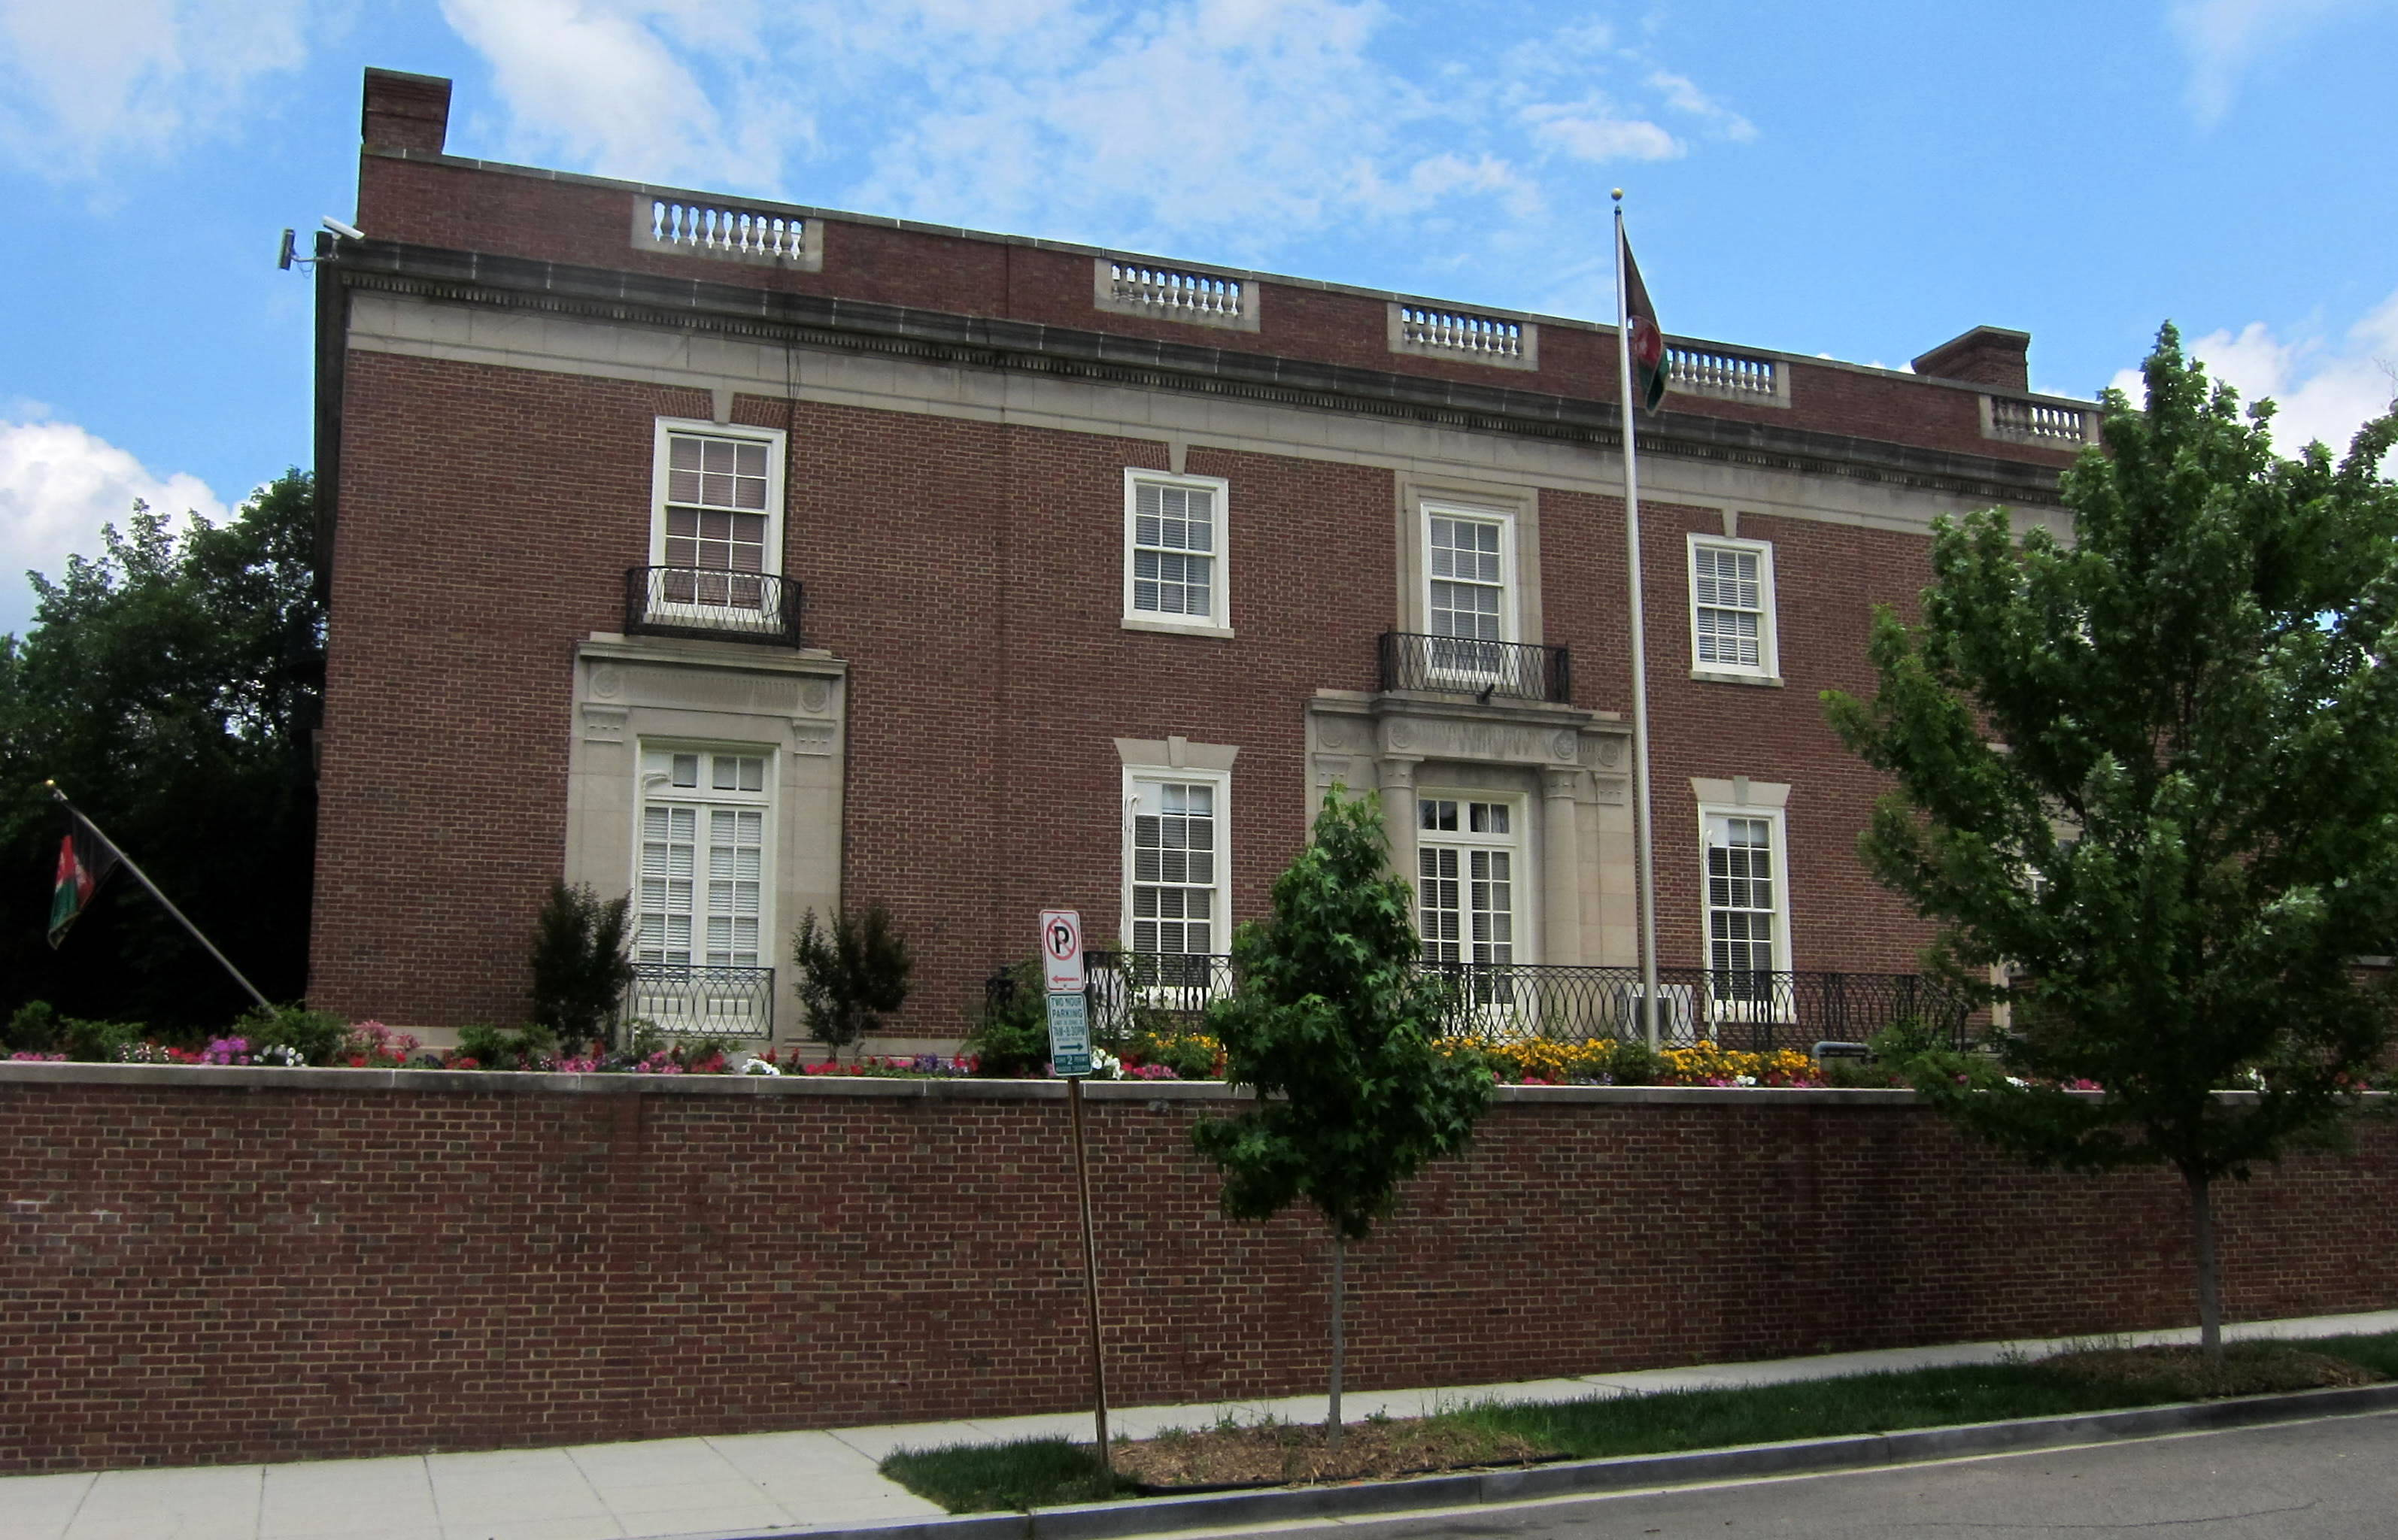 List Of Diplomatic Missions In Washington D C Wikipedia